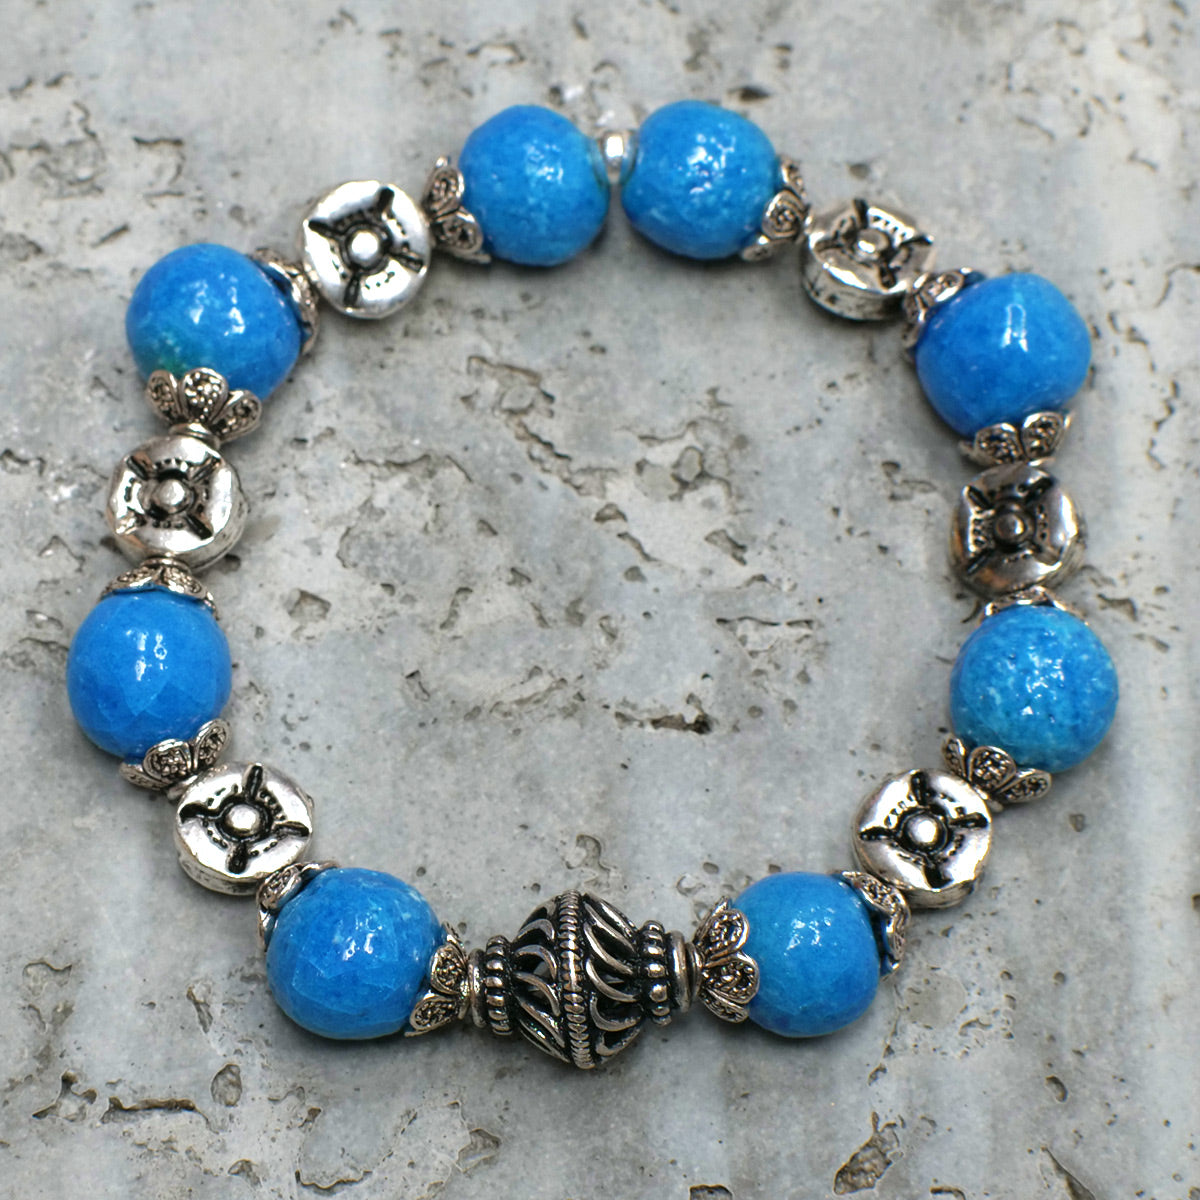 Men's Bracelet in Blue Faience - Em Hotep Collection